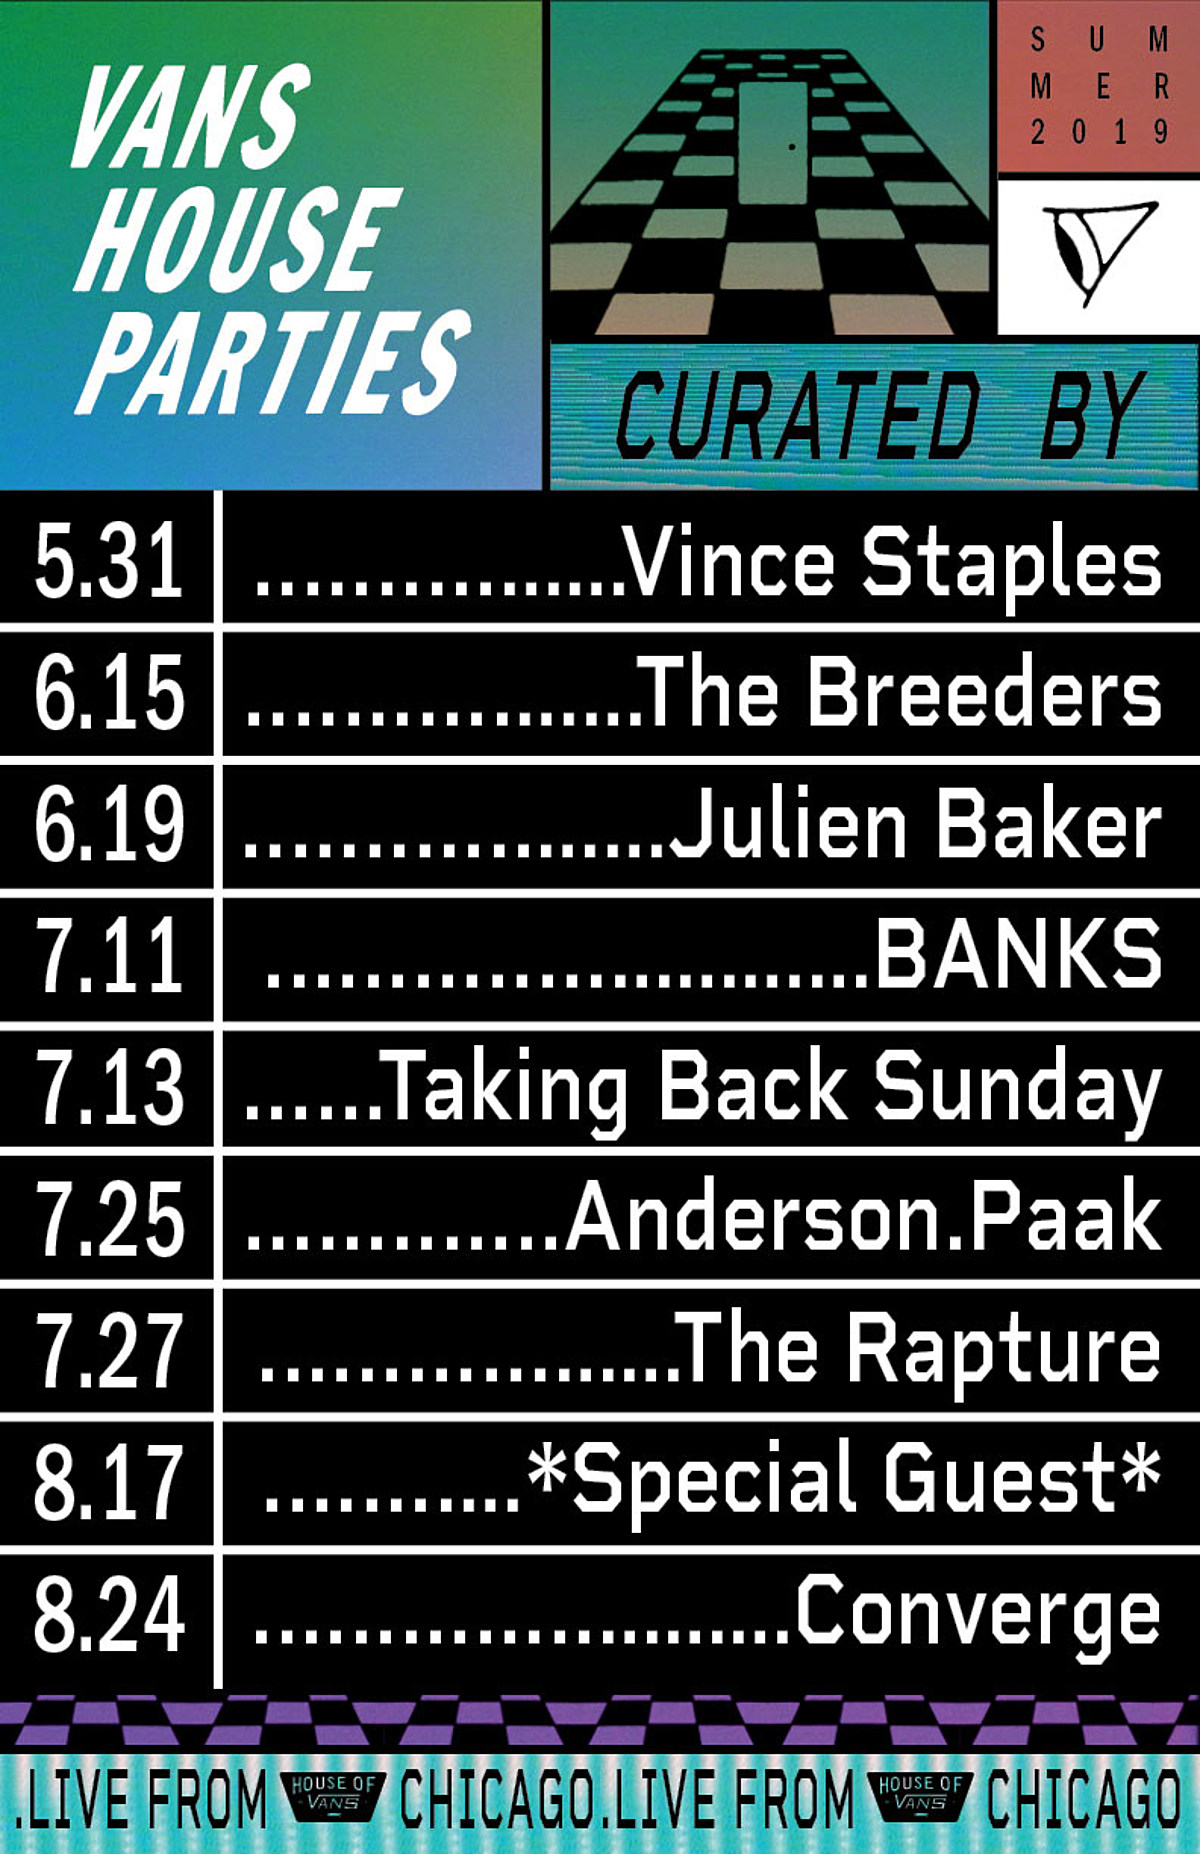 House of Vans Chicago 2019 free shows (Converge, The Rapture, The Breeders, more)